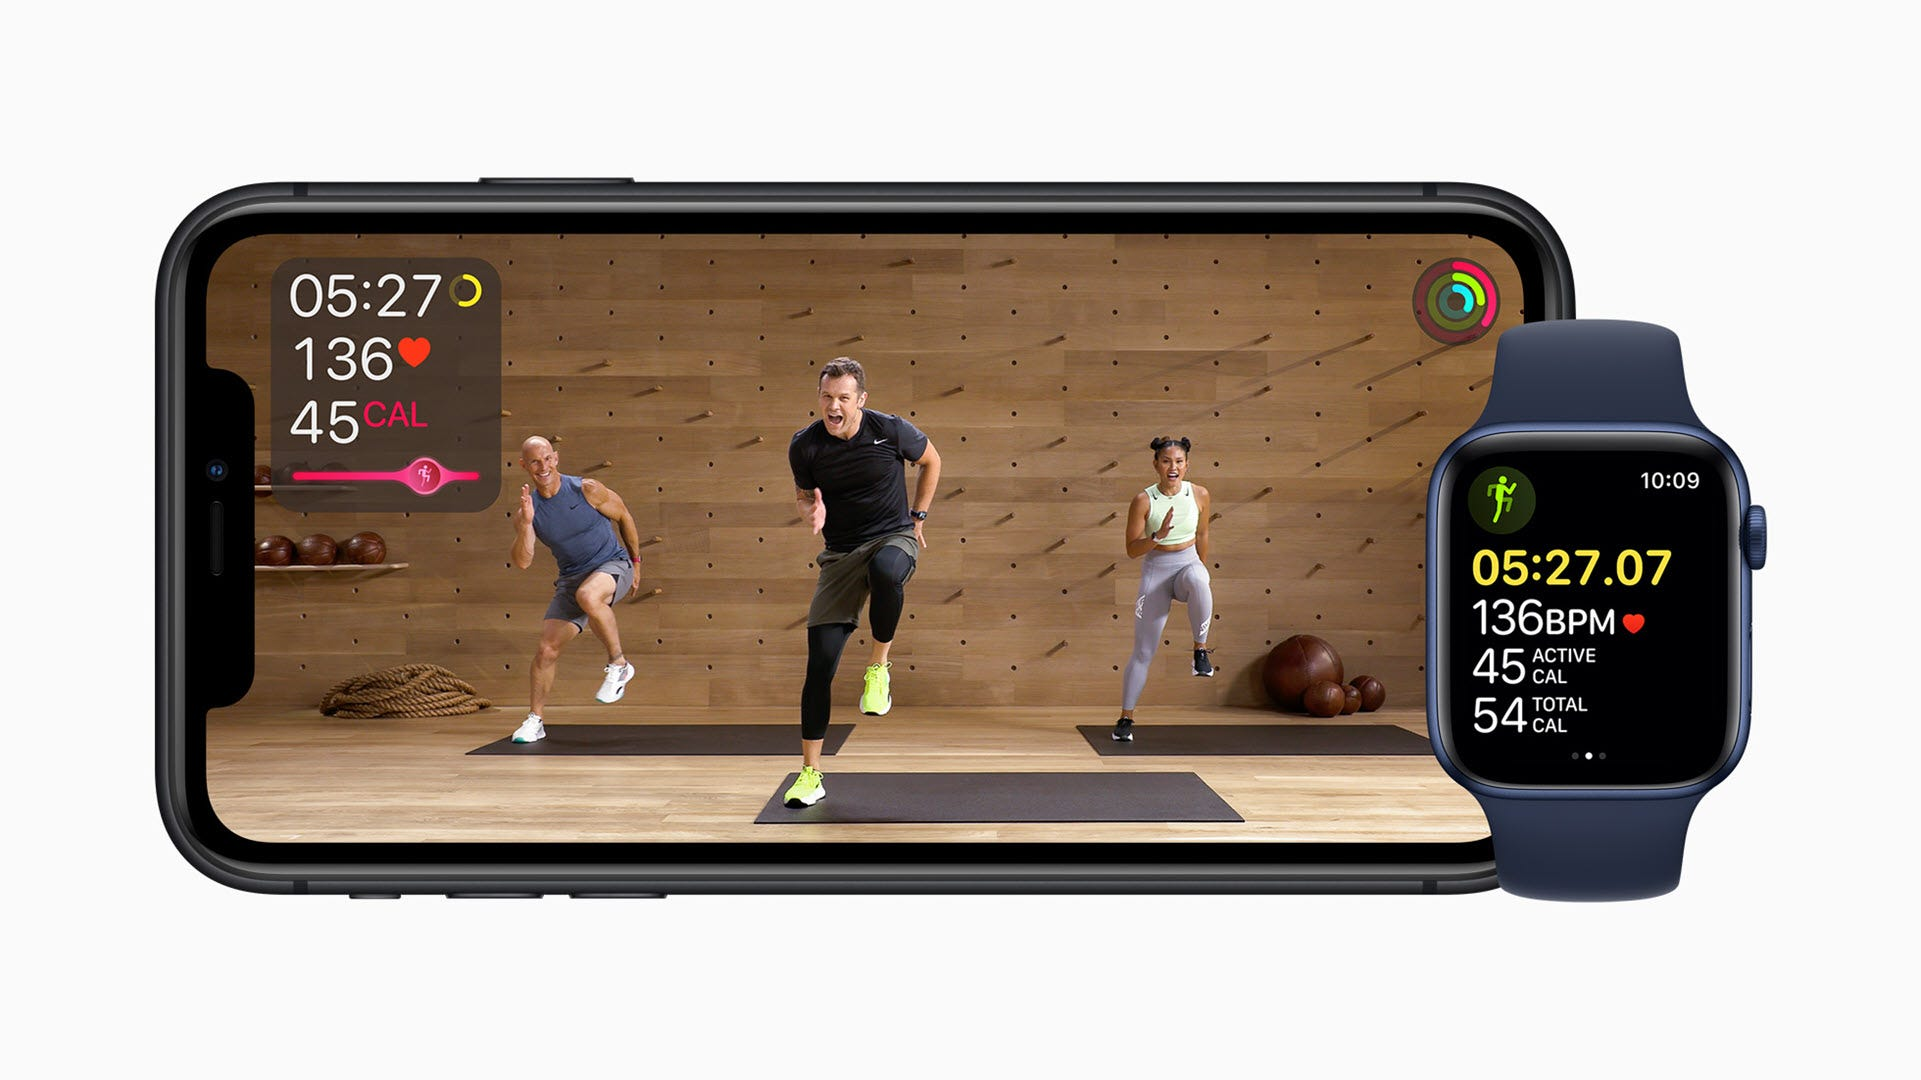 An Apple watch next to an iPhone with trainers on screen and the Apple Watche's stats on screen.